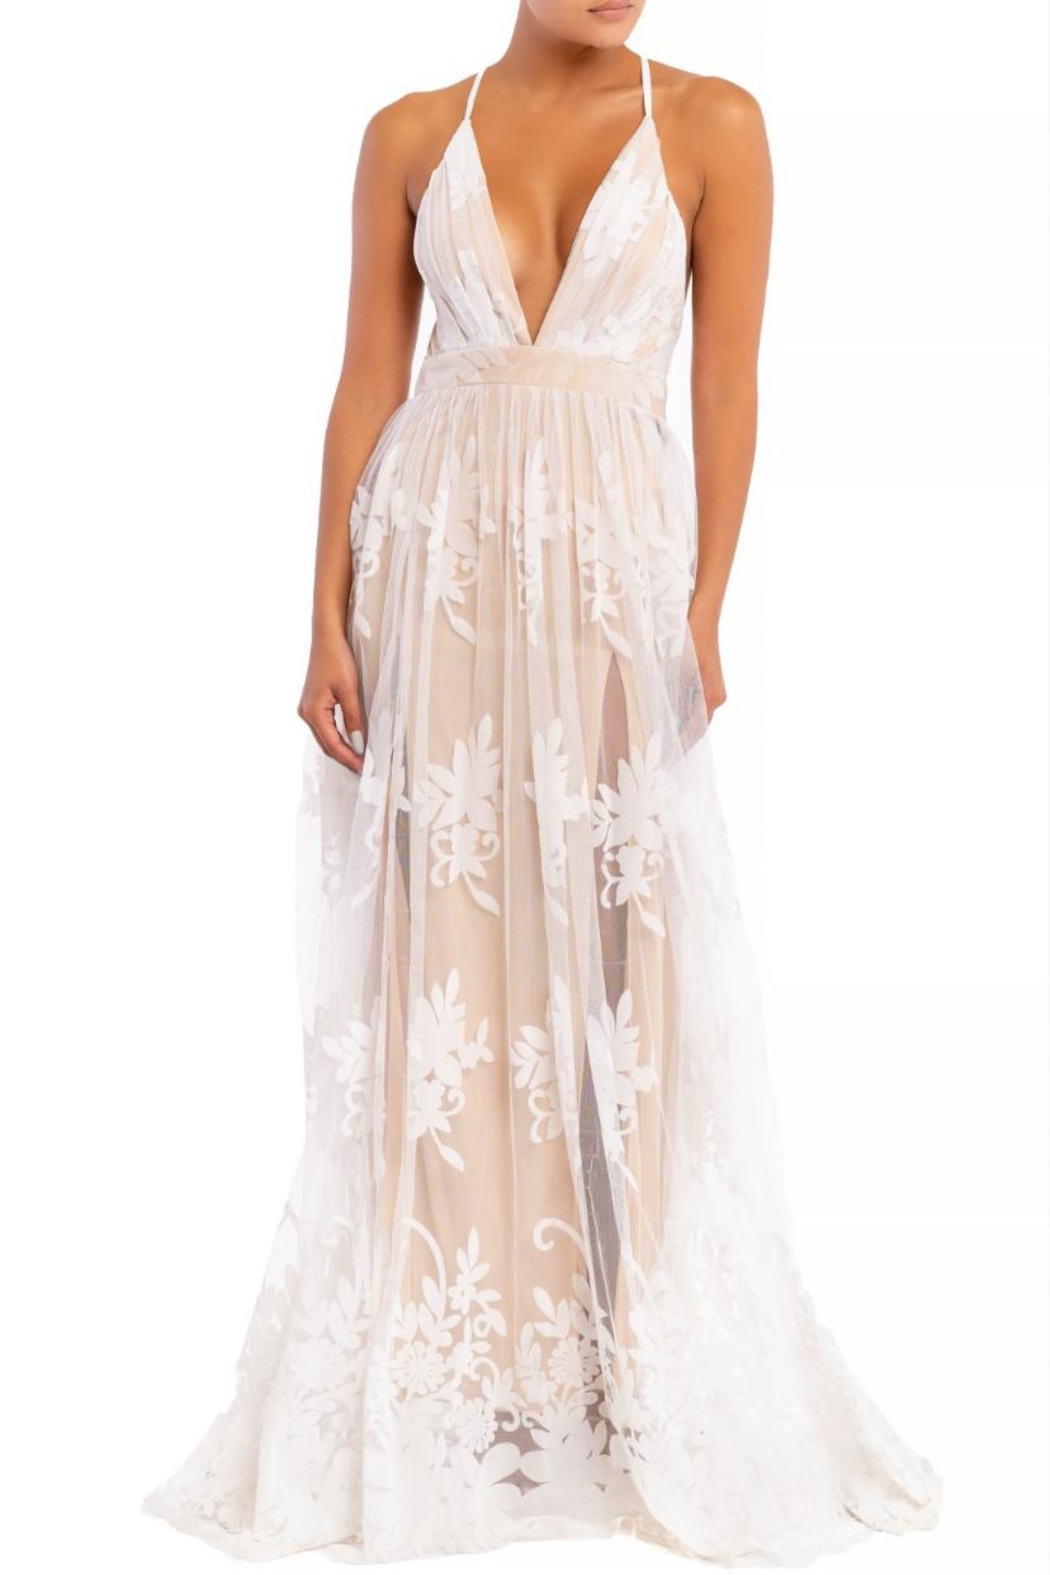 luxxel Floral Flocked Maxi - Main Image